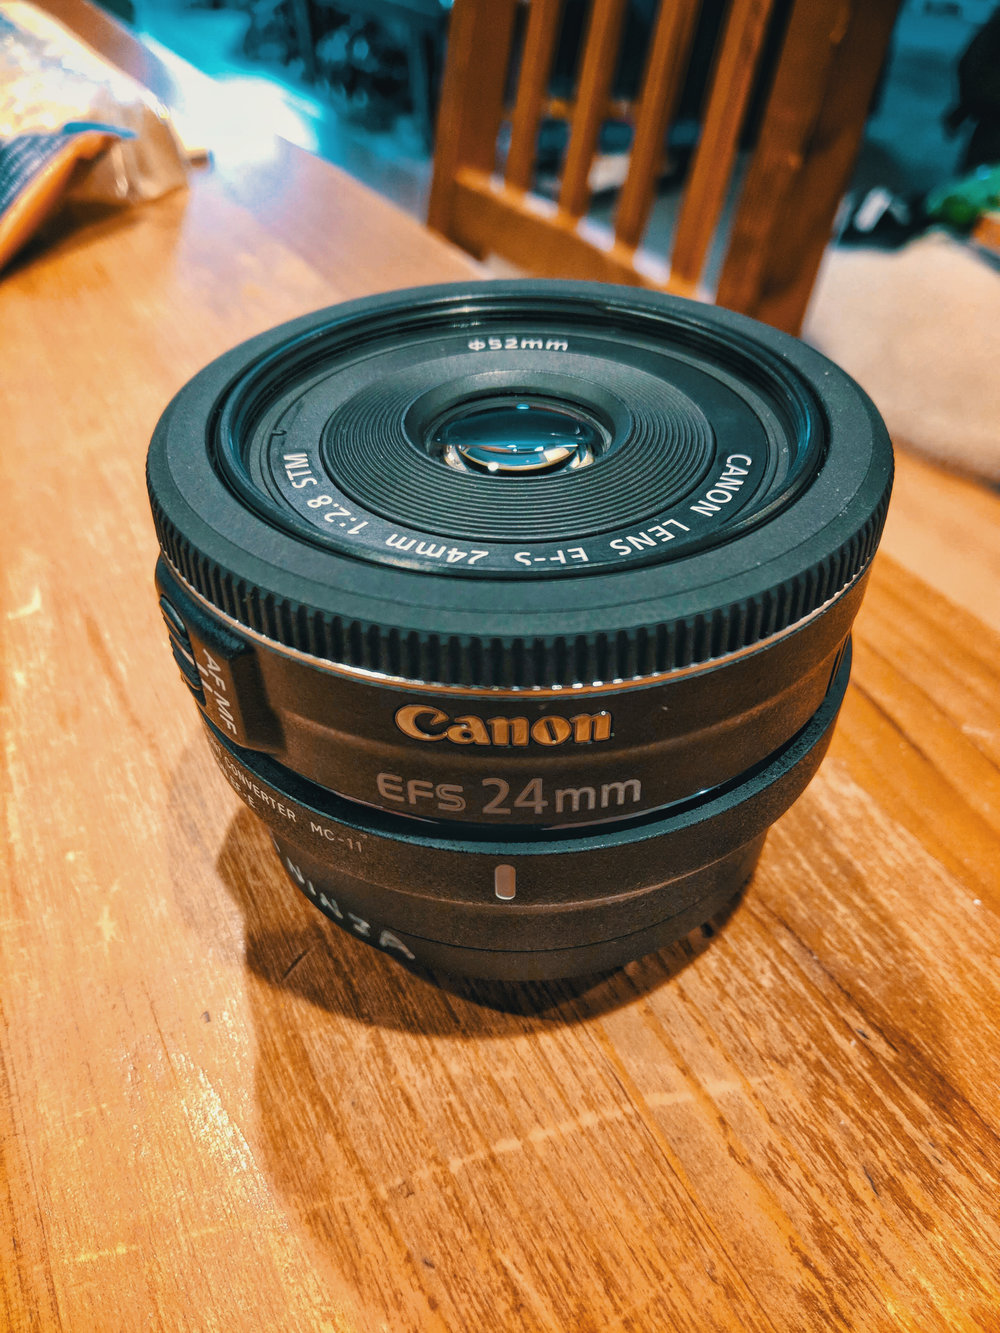 The Canon 24mm 2.8 Lens mounted on the Sigma MC-11 Adapter